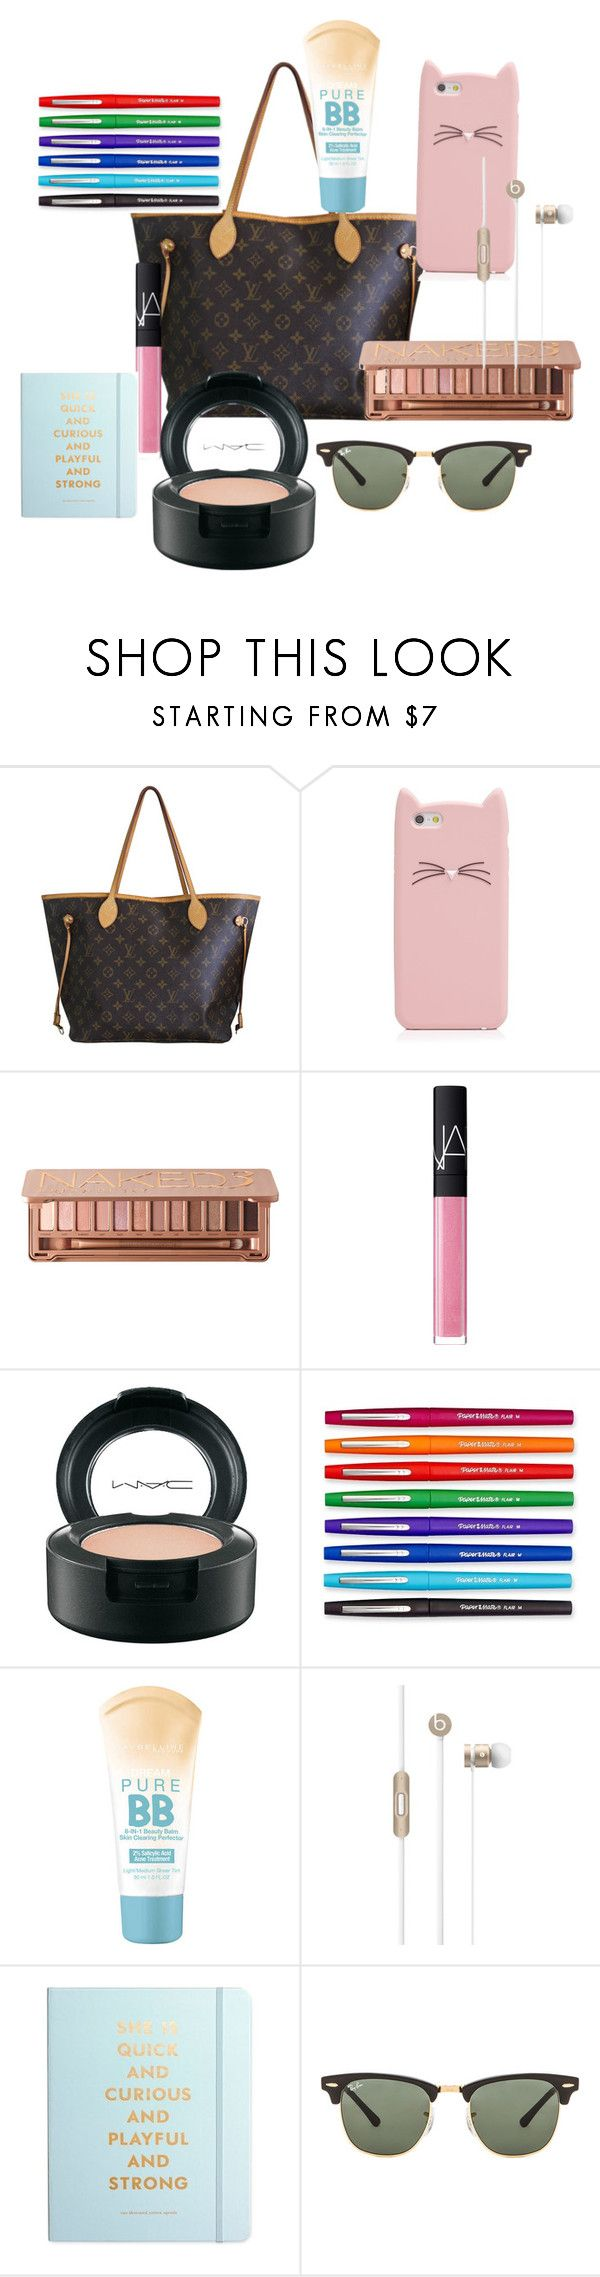 """What's in my purse :]"" by maemoo7 ❤ liked on Polyvore featuring moda, Louis Vuitton, Kate Spade, Urban Decay, NARS Cosmetics, MAC Cosmetics, Paper Mate, Maybelline, Beats by Dr. Dre ve Ray-Ban"